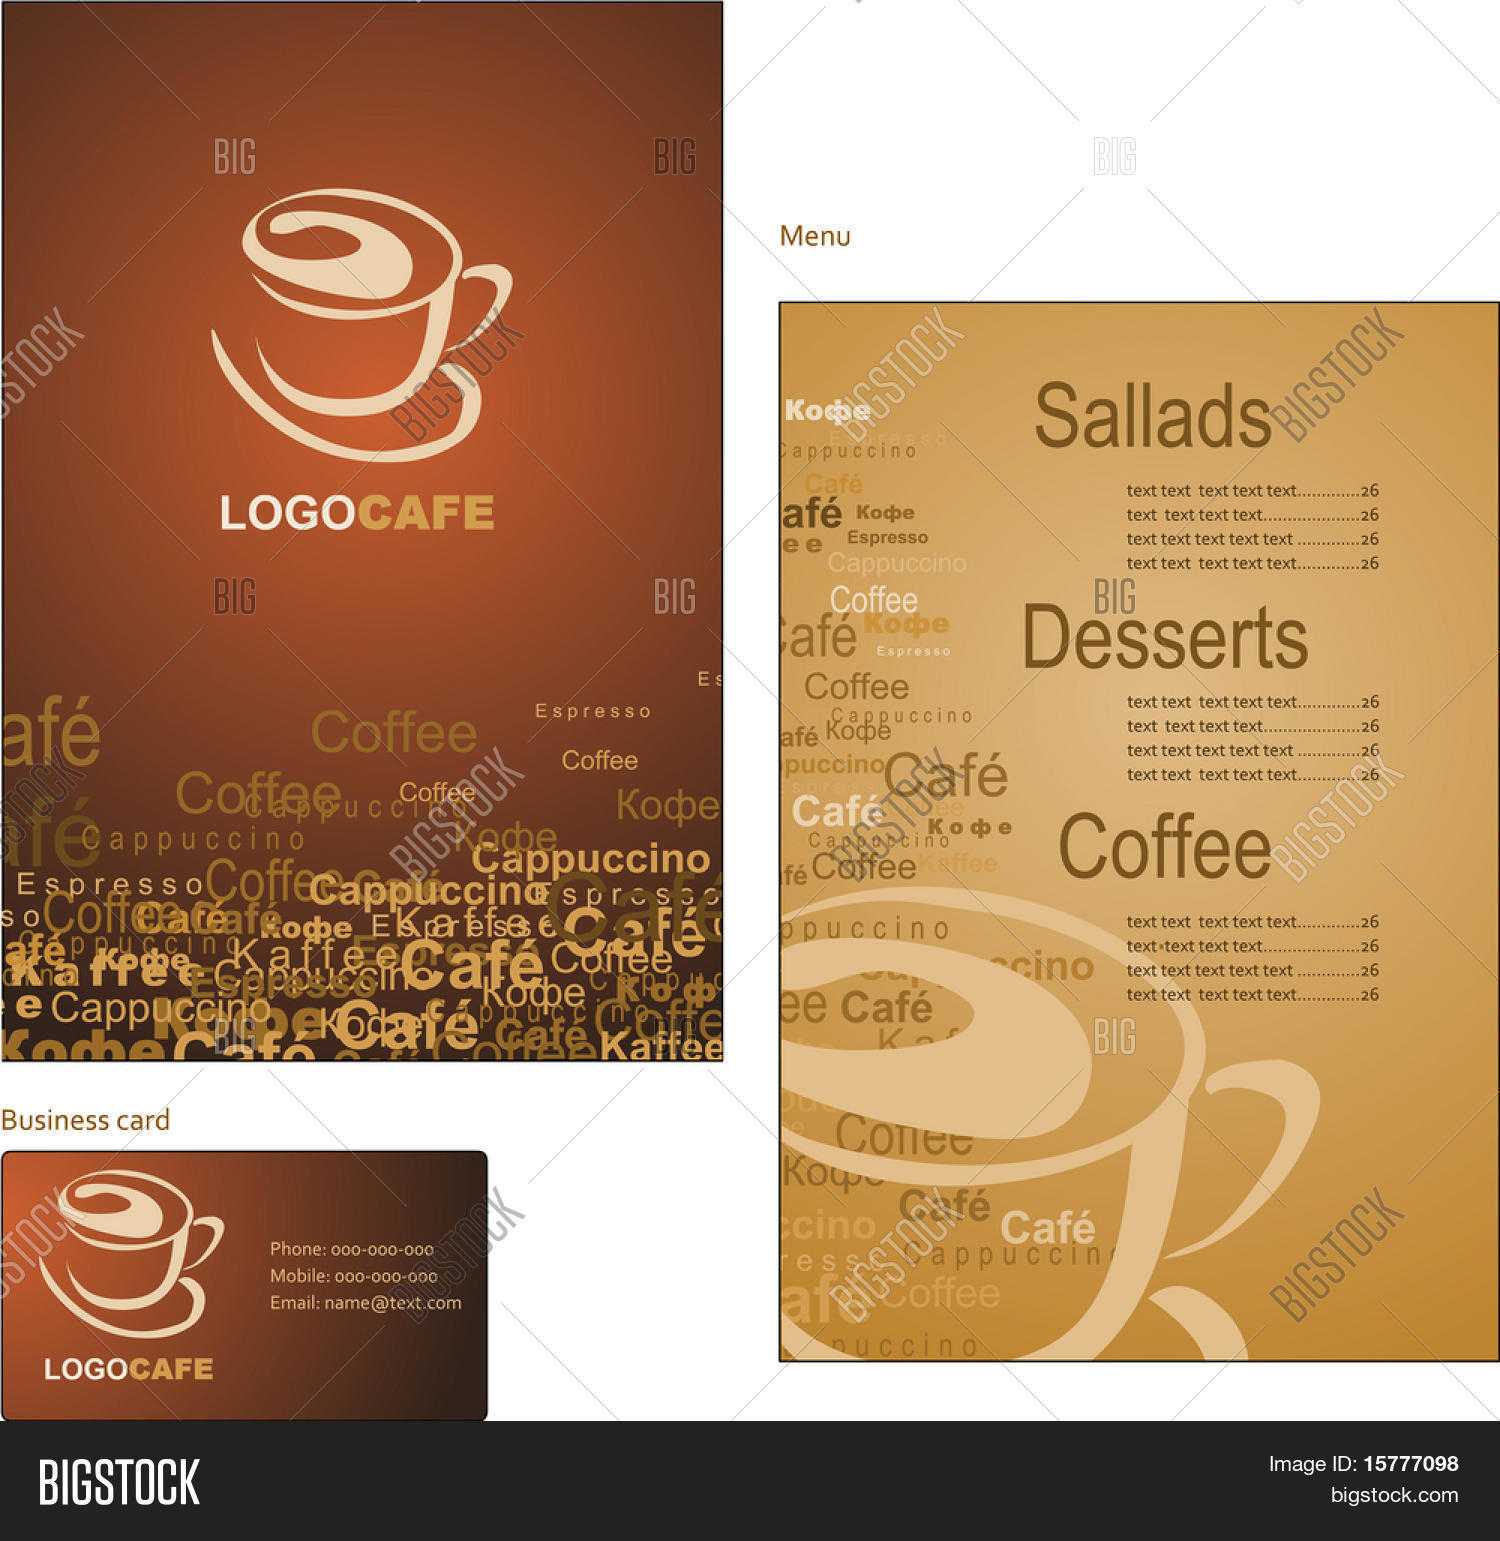 Template designs menu vector photo free trial bigstock template designs of menu and business card for coffee shop and restaurant flashek Choice Image